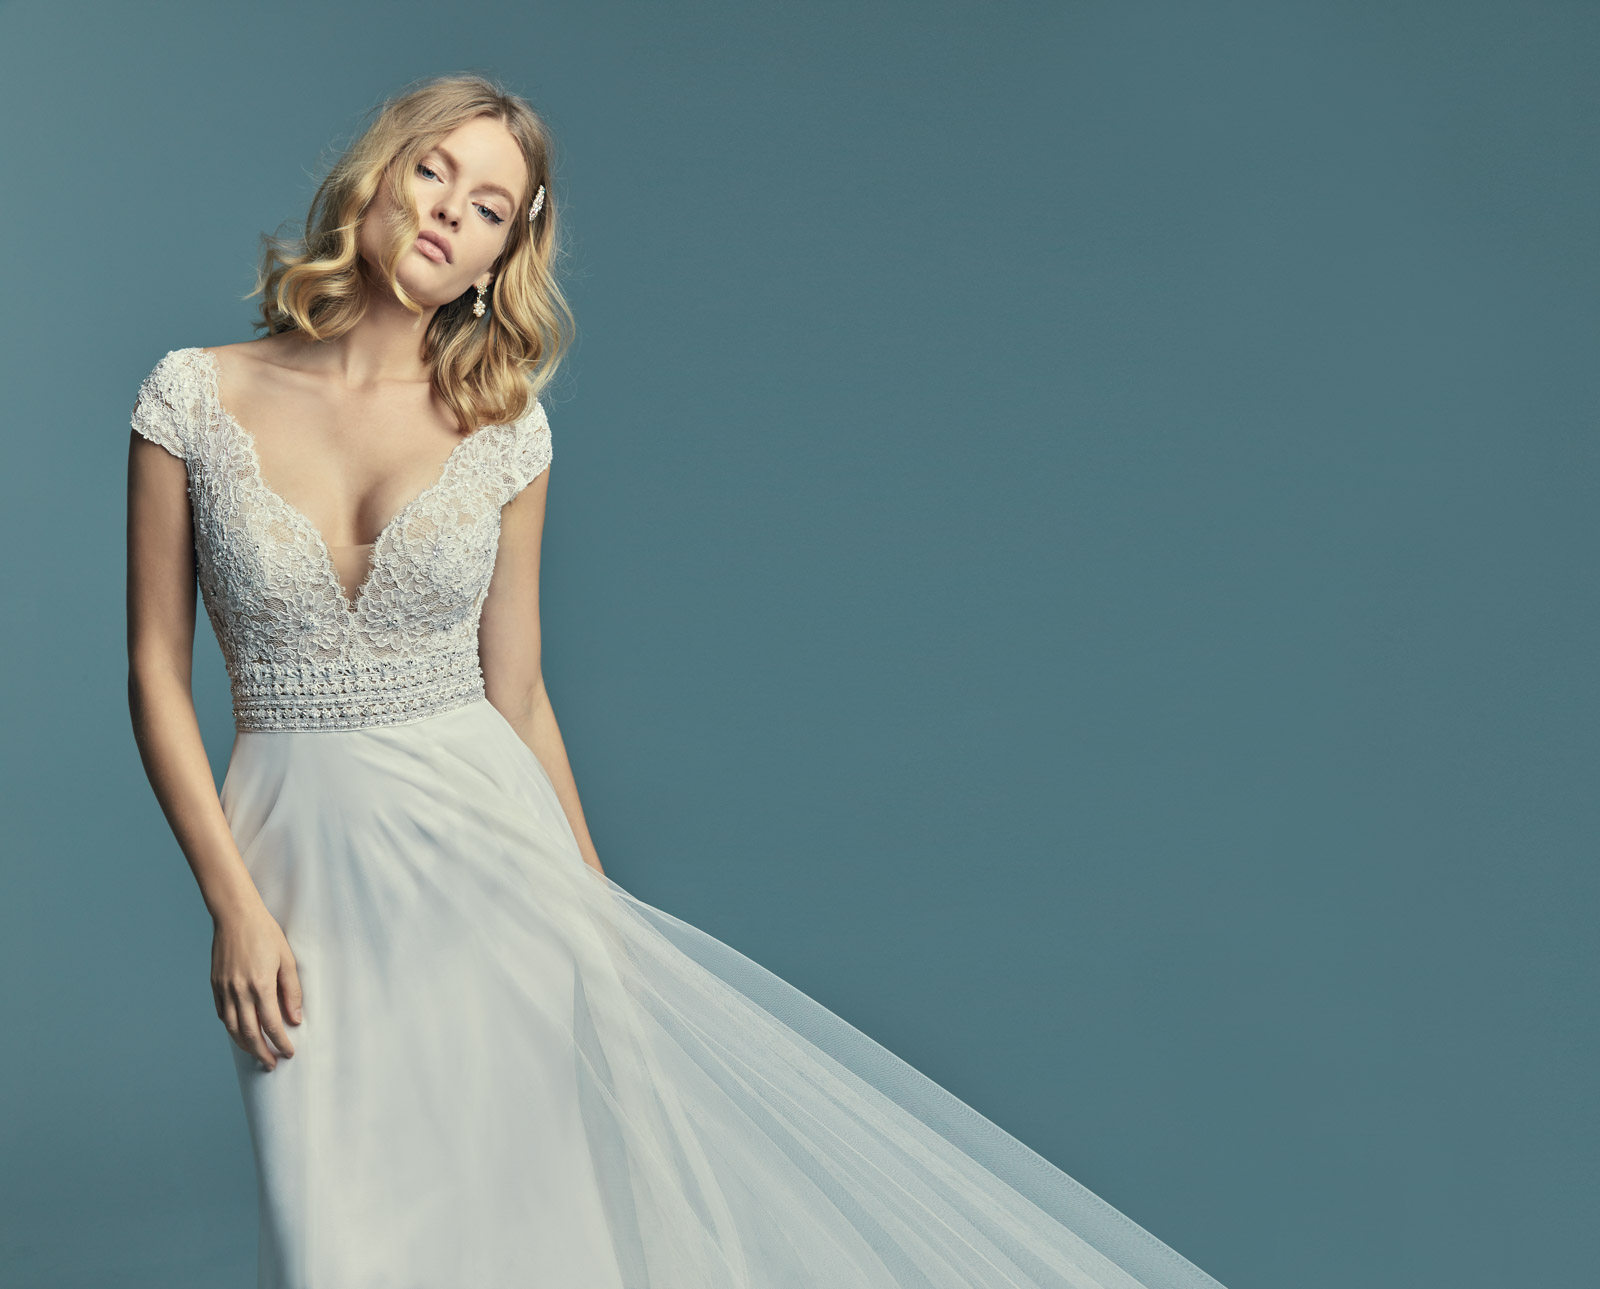 Maggie-Sottero-Monarch-8MS751-Alt1_72DPI